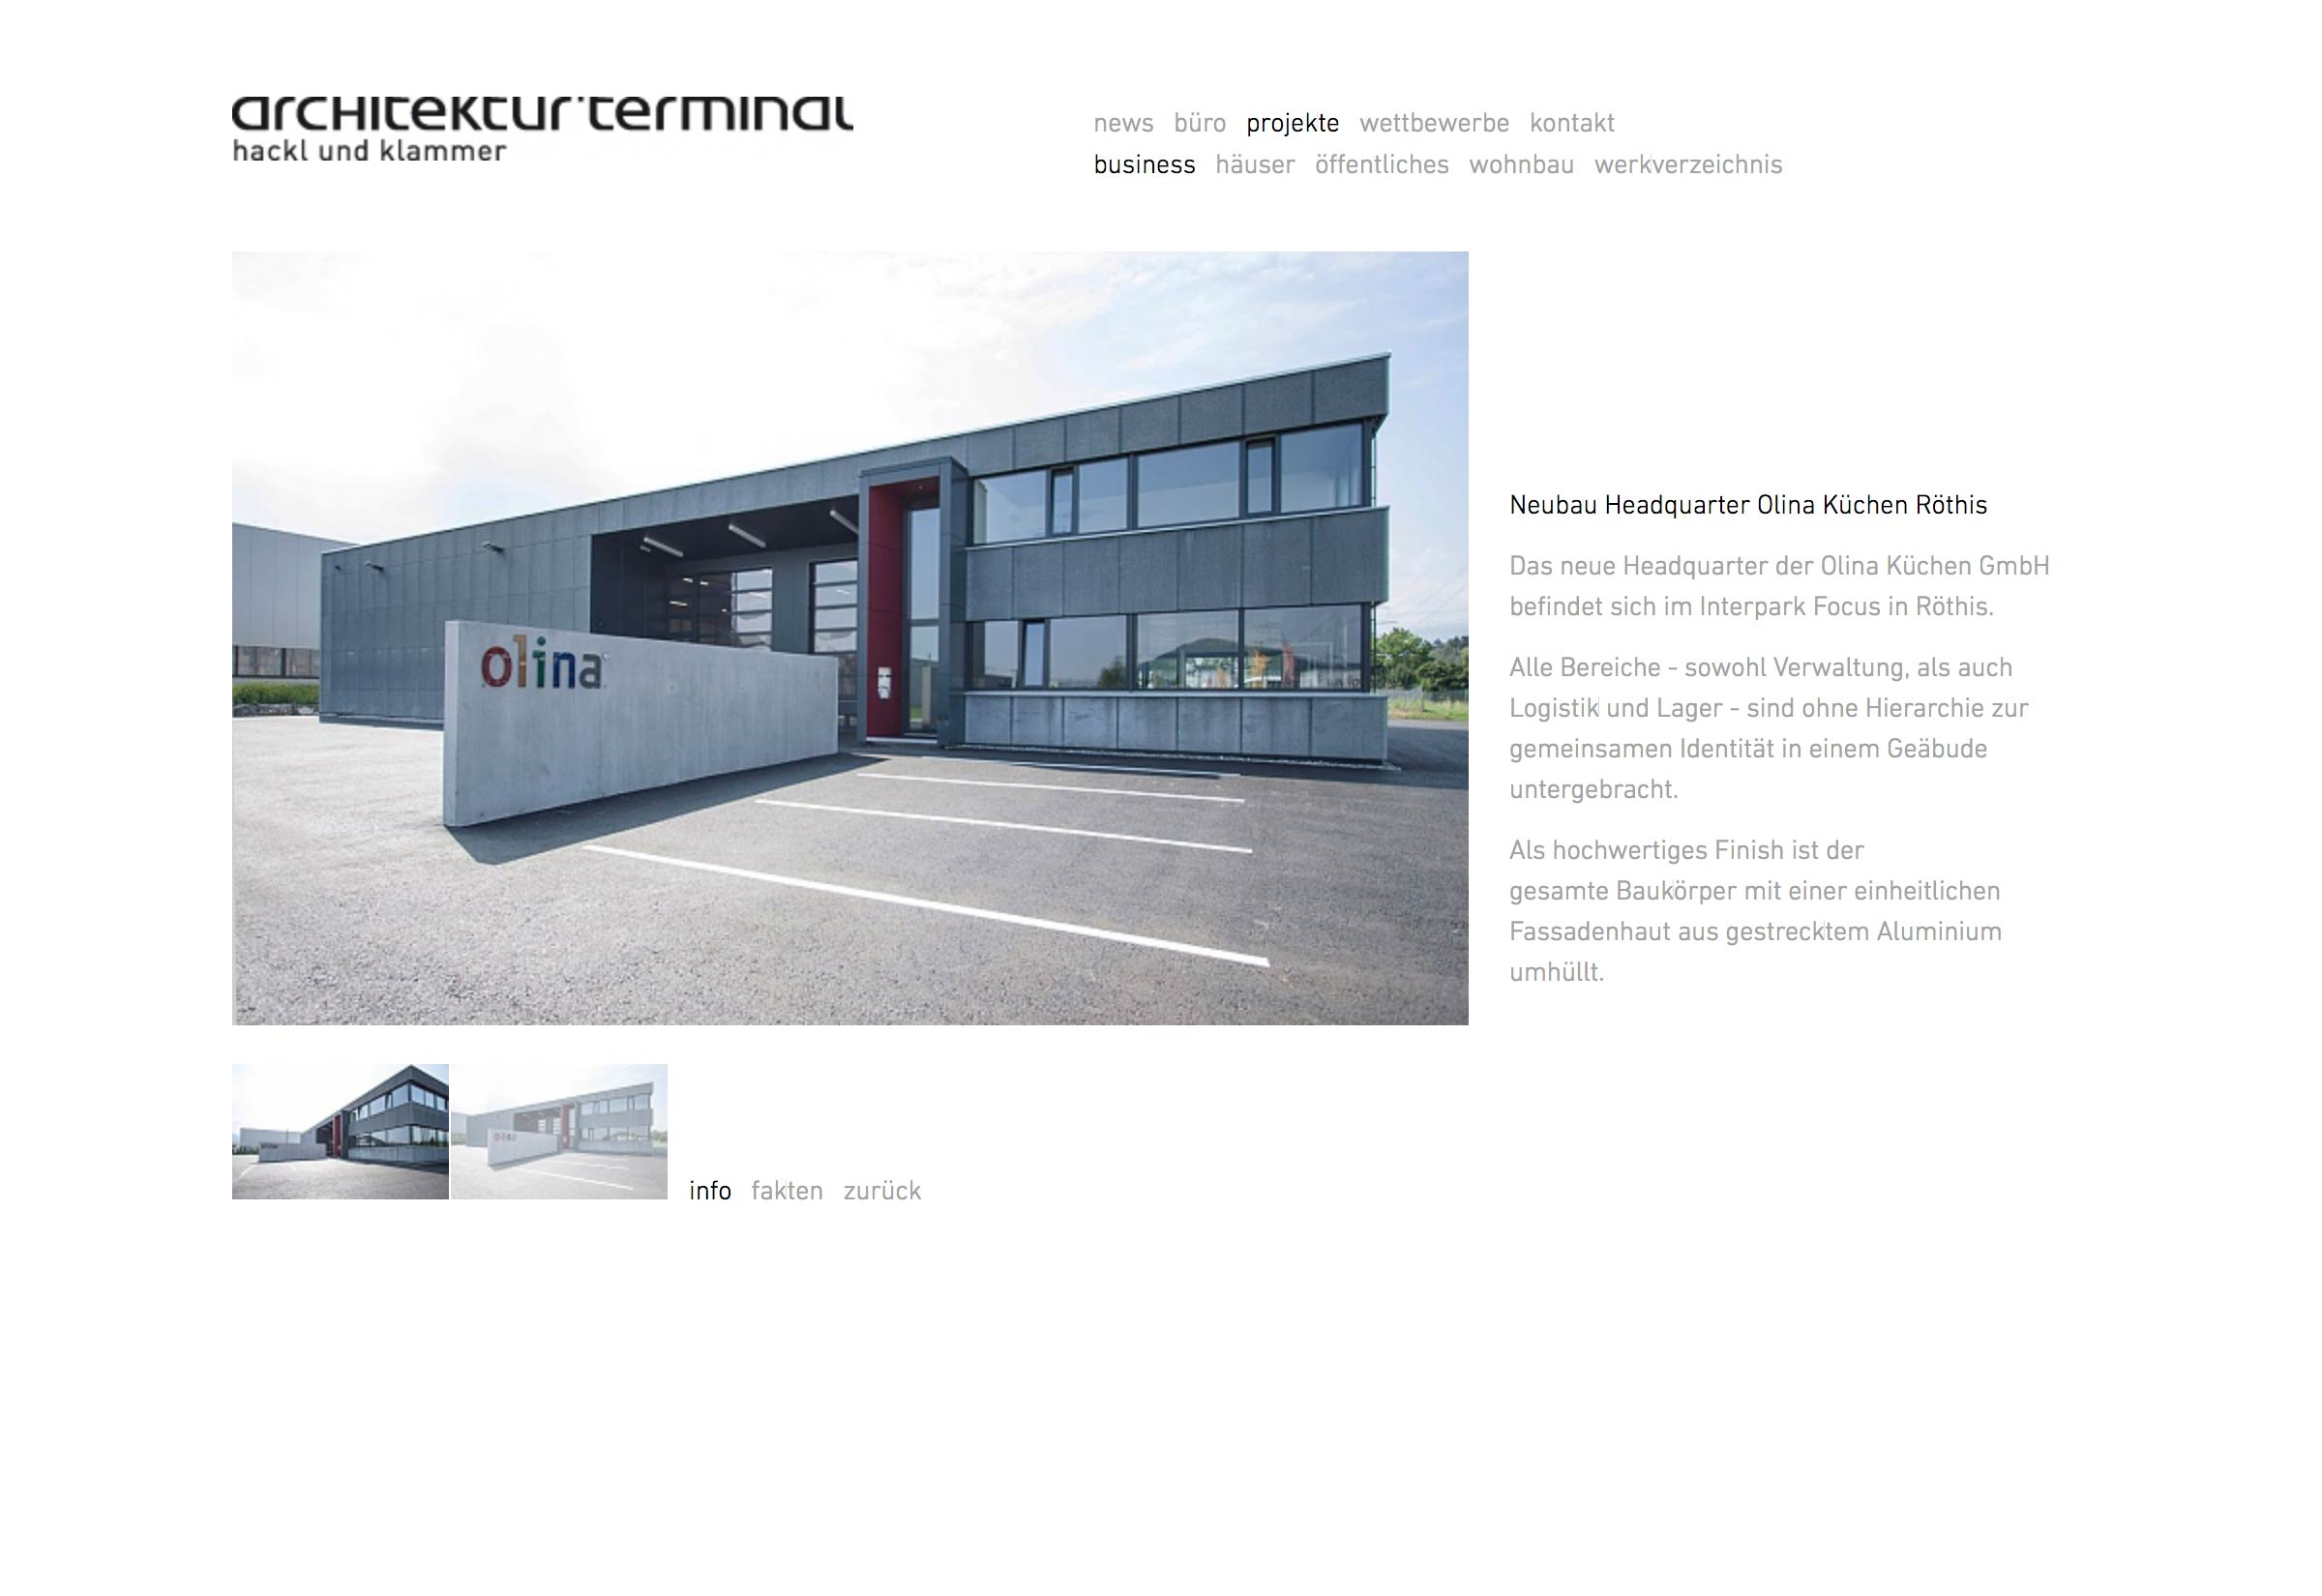 Website architektur.terminal